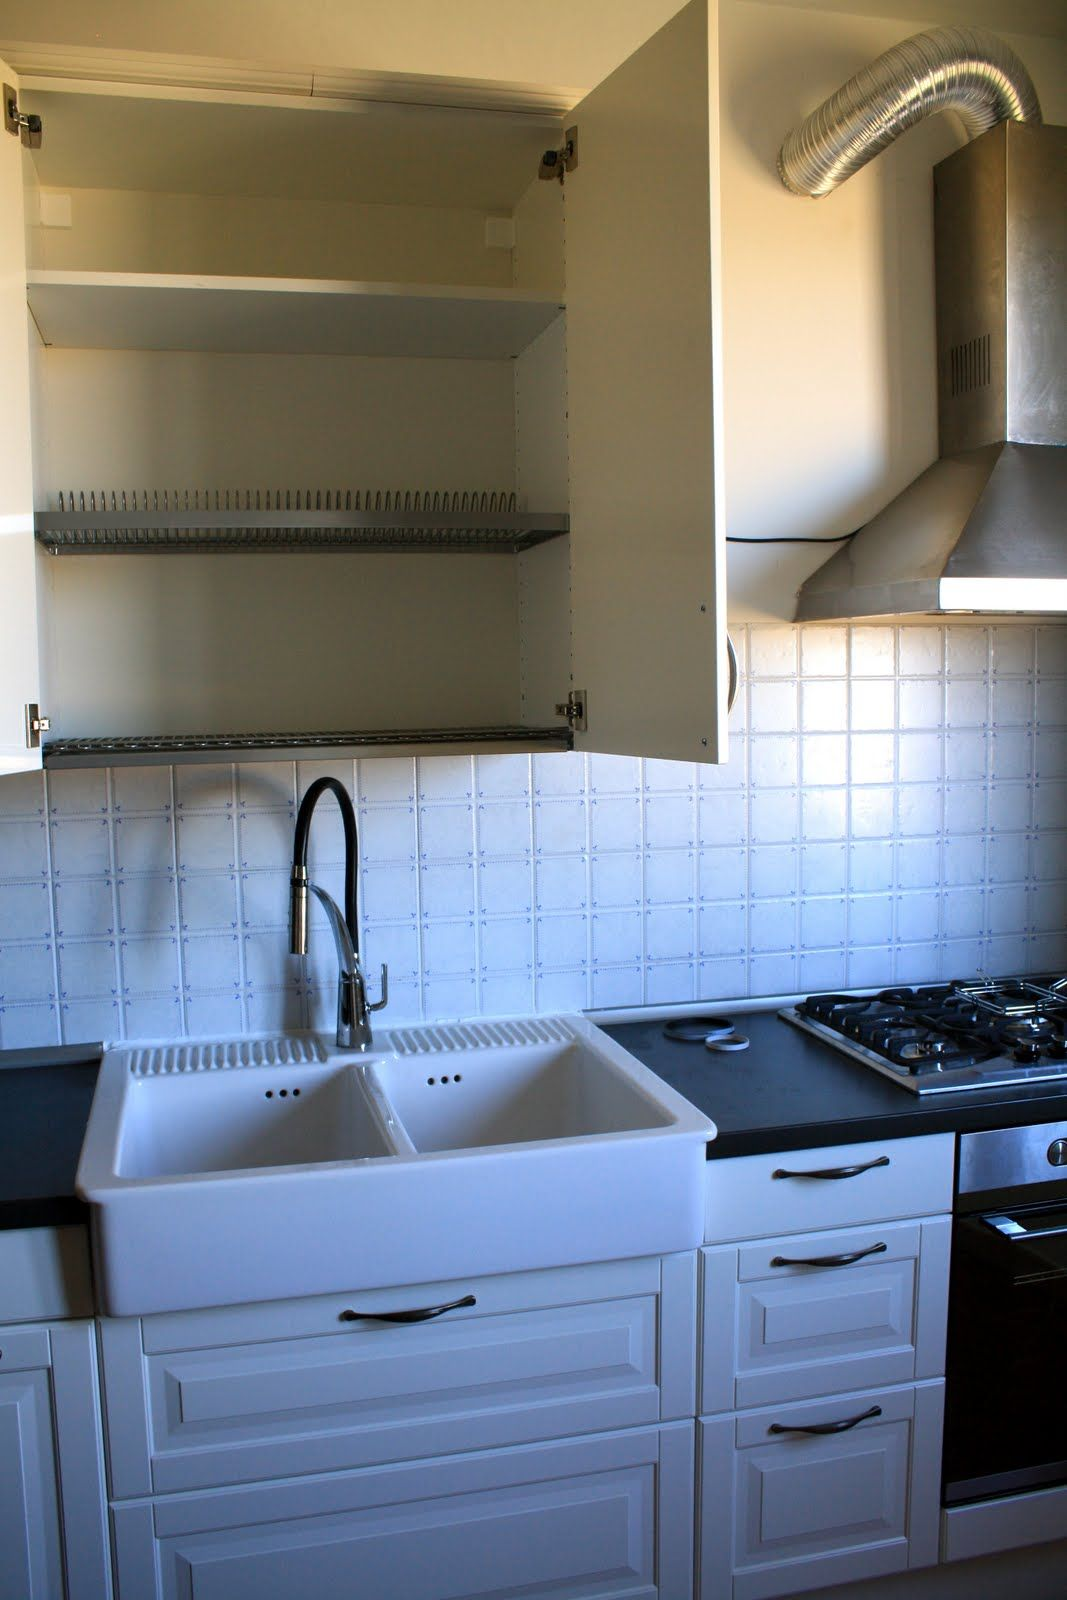 Making Room Our Life In Sicily Finally Our House Kitchen Design European Home Decor Drying Rack Kitchen